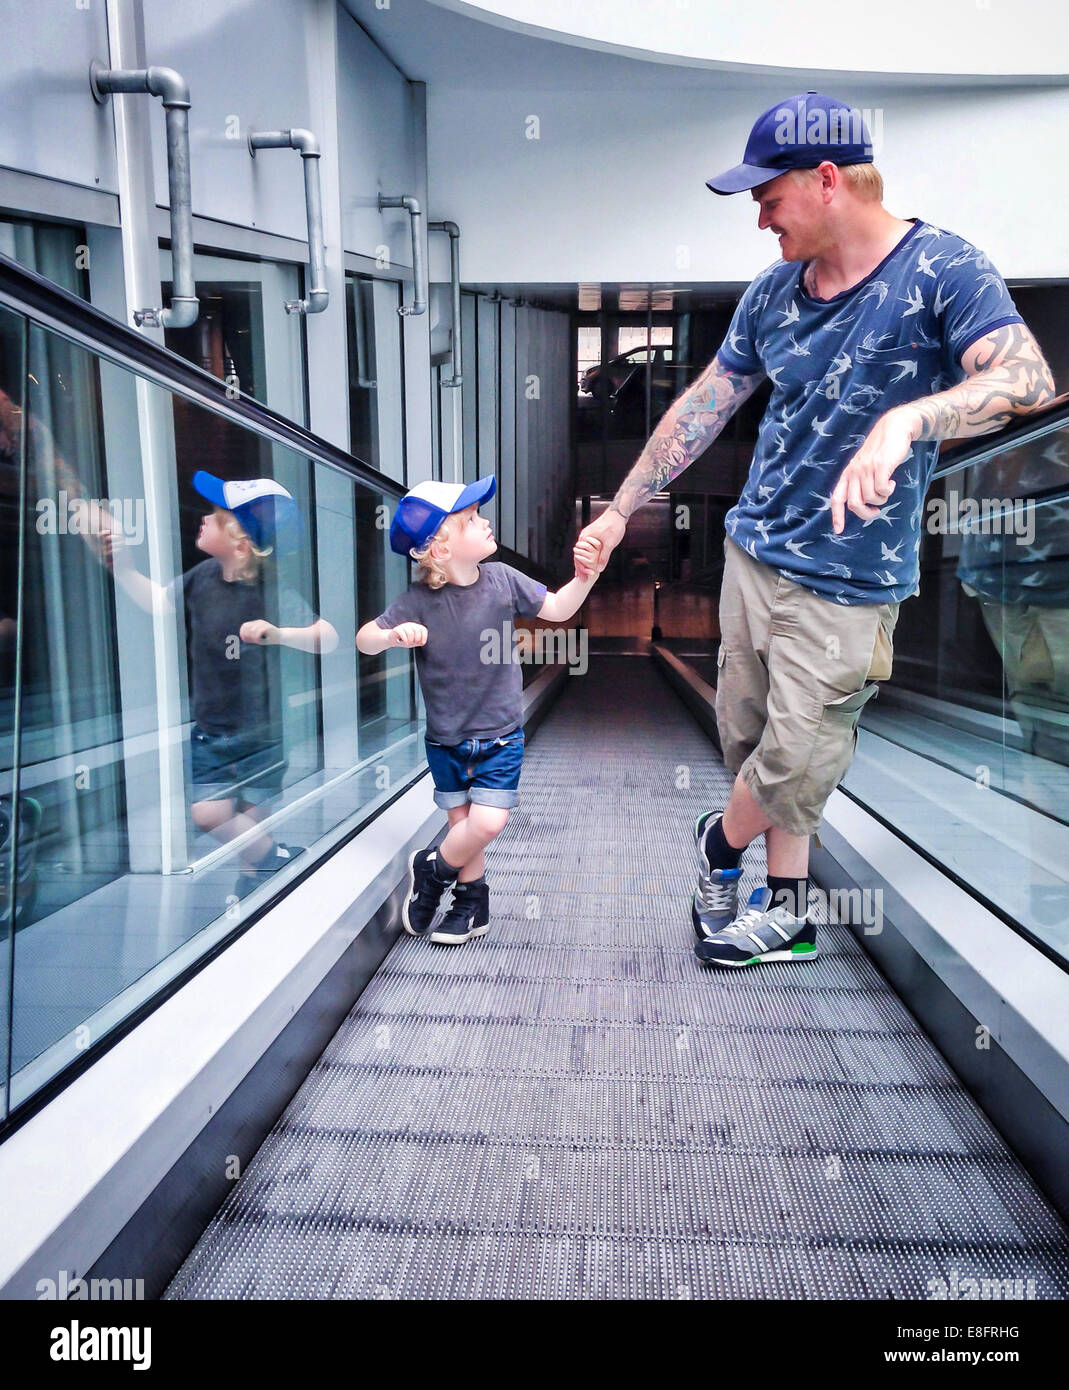 Father and son standing on a travelator - Stock Image